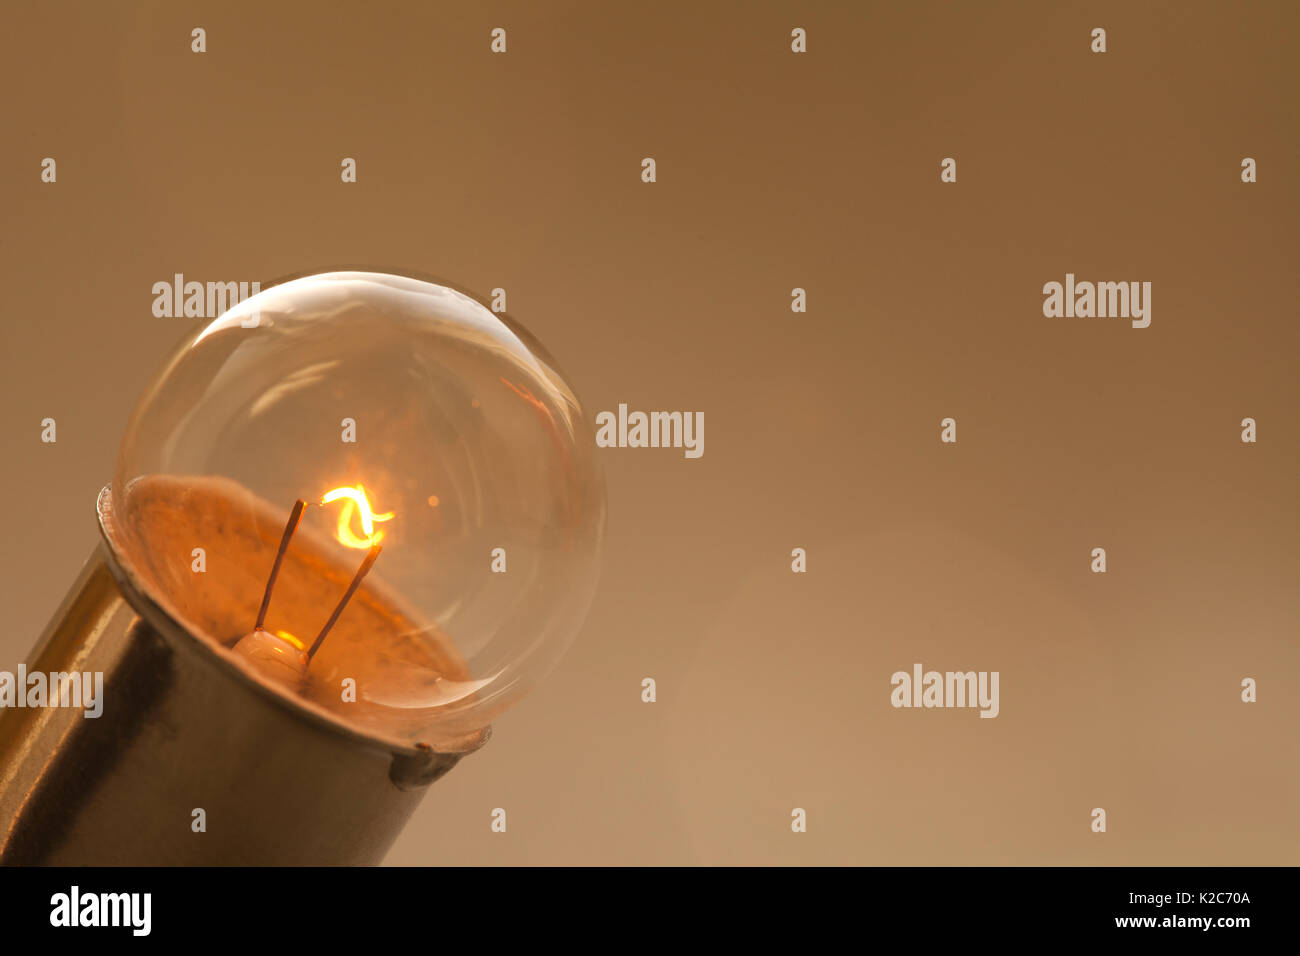 Glowing light bulb on gold brown background. Retro style lamp with ideal spherical surface and filament element. Macro view, copy space - Stock Image